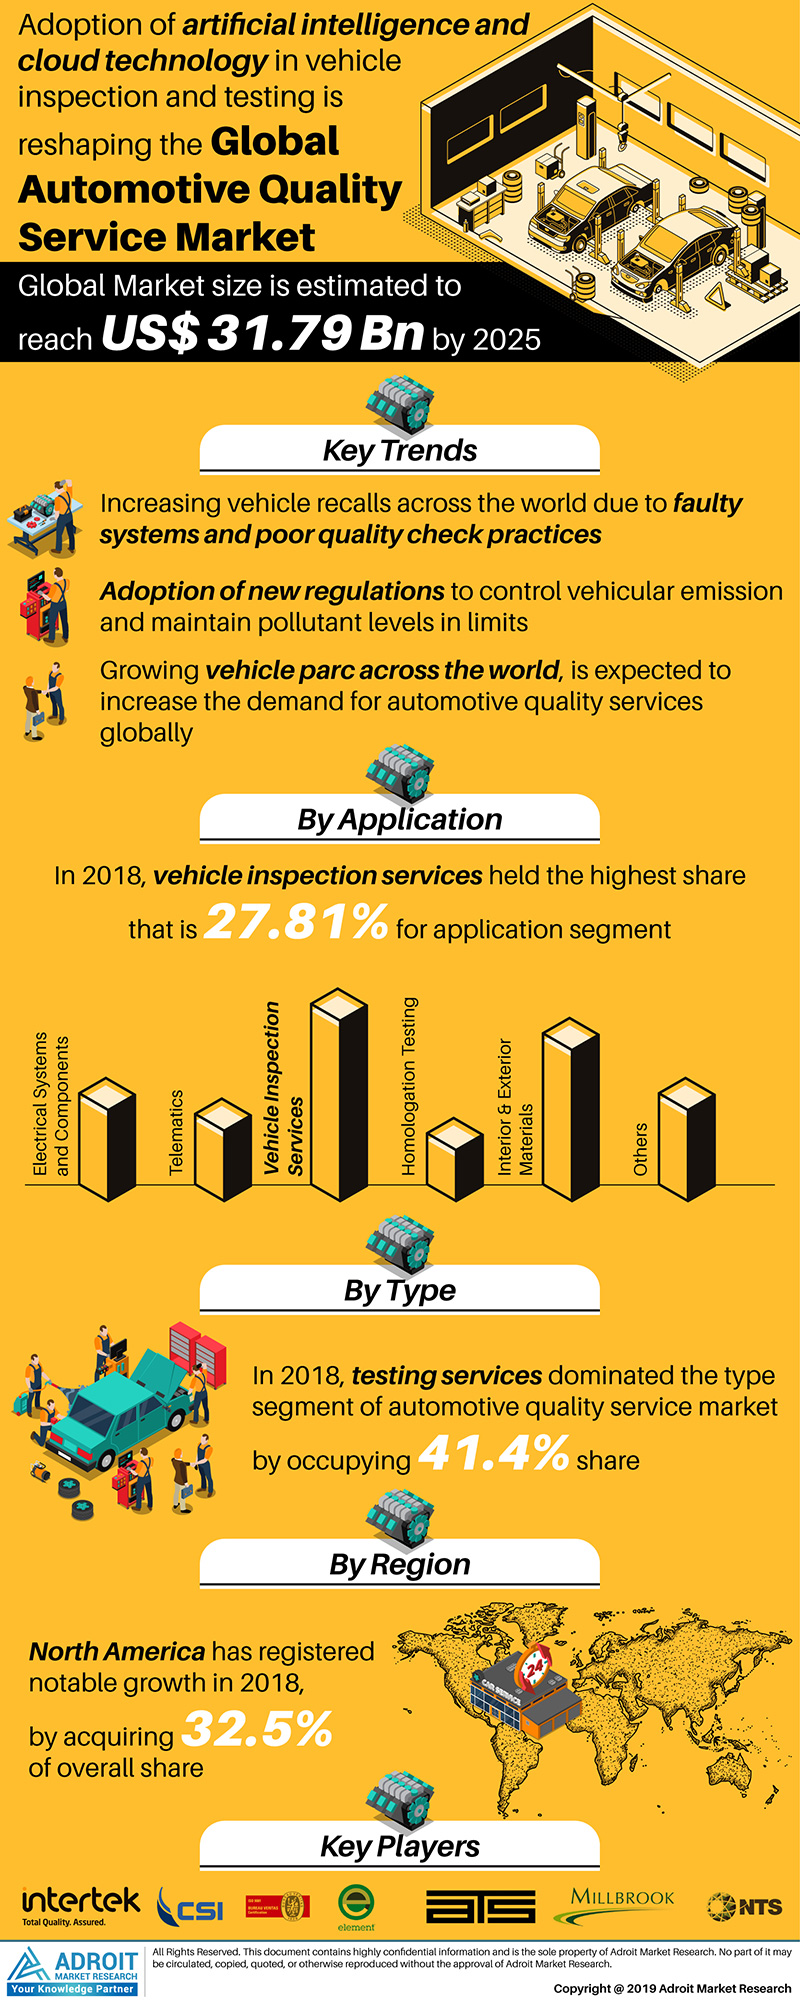 Global Automotive Quality Service Market Size 2017 By Service Type, Application, Region and Forecast 2018 to 2025